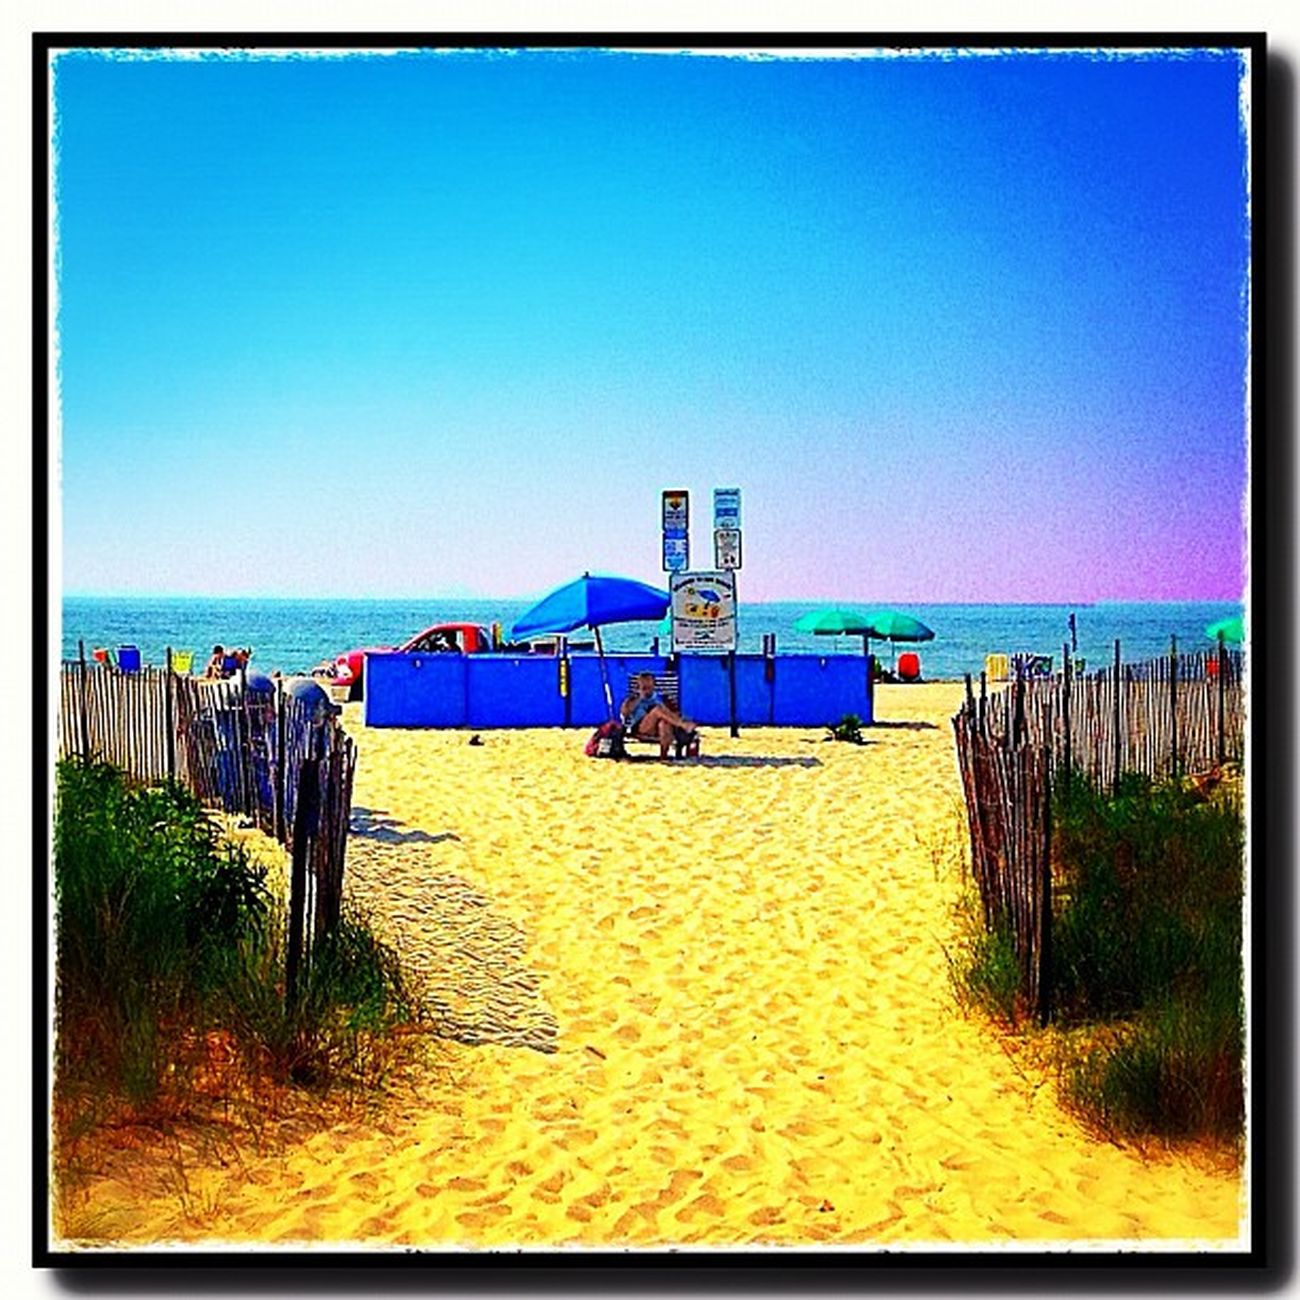 #beachtaginspector #capemay #southjersey #beach #sand #water #sea #waves wave #ocean #summer #sun #sunny #seaside #blue #yellow #view #nature #instabeach #beautiful #instasummer #beauty #horizon #love #coast #sky Seaside Yellow Summer Ocean Sea Sand Beach Waves Water Coast Sun Horizon Nature Sunny 70likes Instasummer Beautiful Southjersey View Instabeach Sky Capemay Love Beauty Blue Beachtaginspector